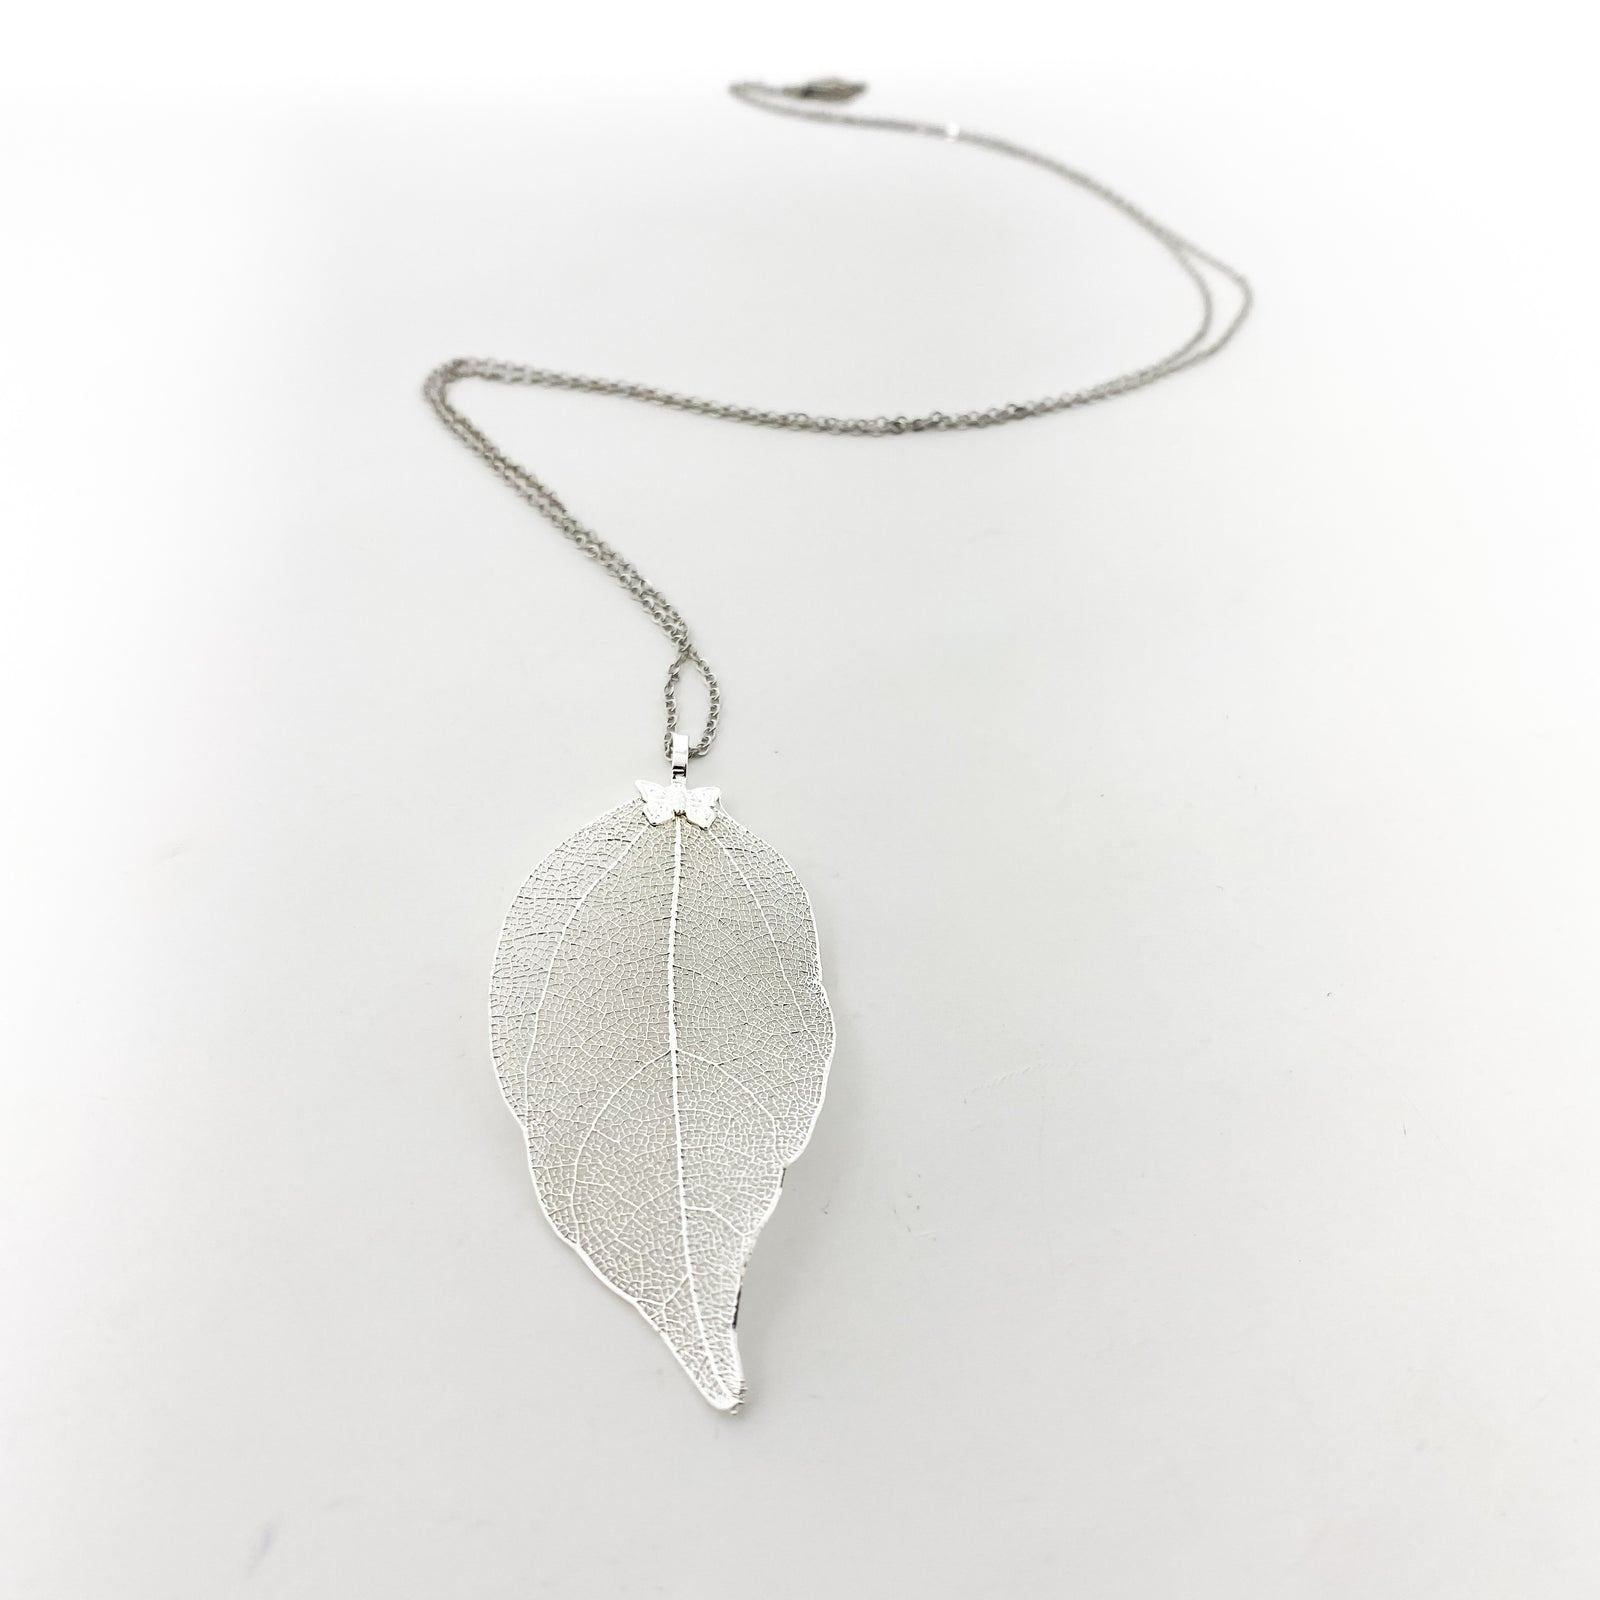 DAINTY SILVER LEAF NECKLACE